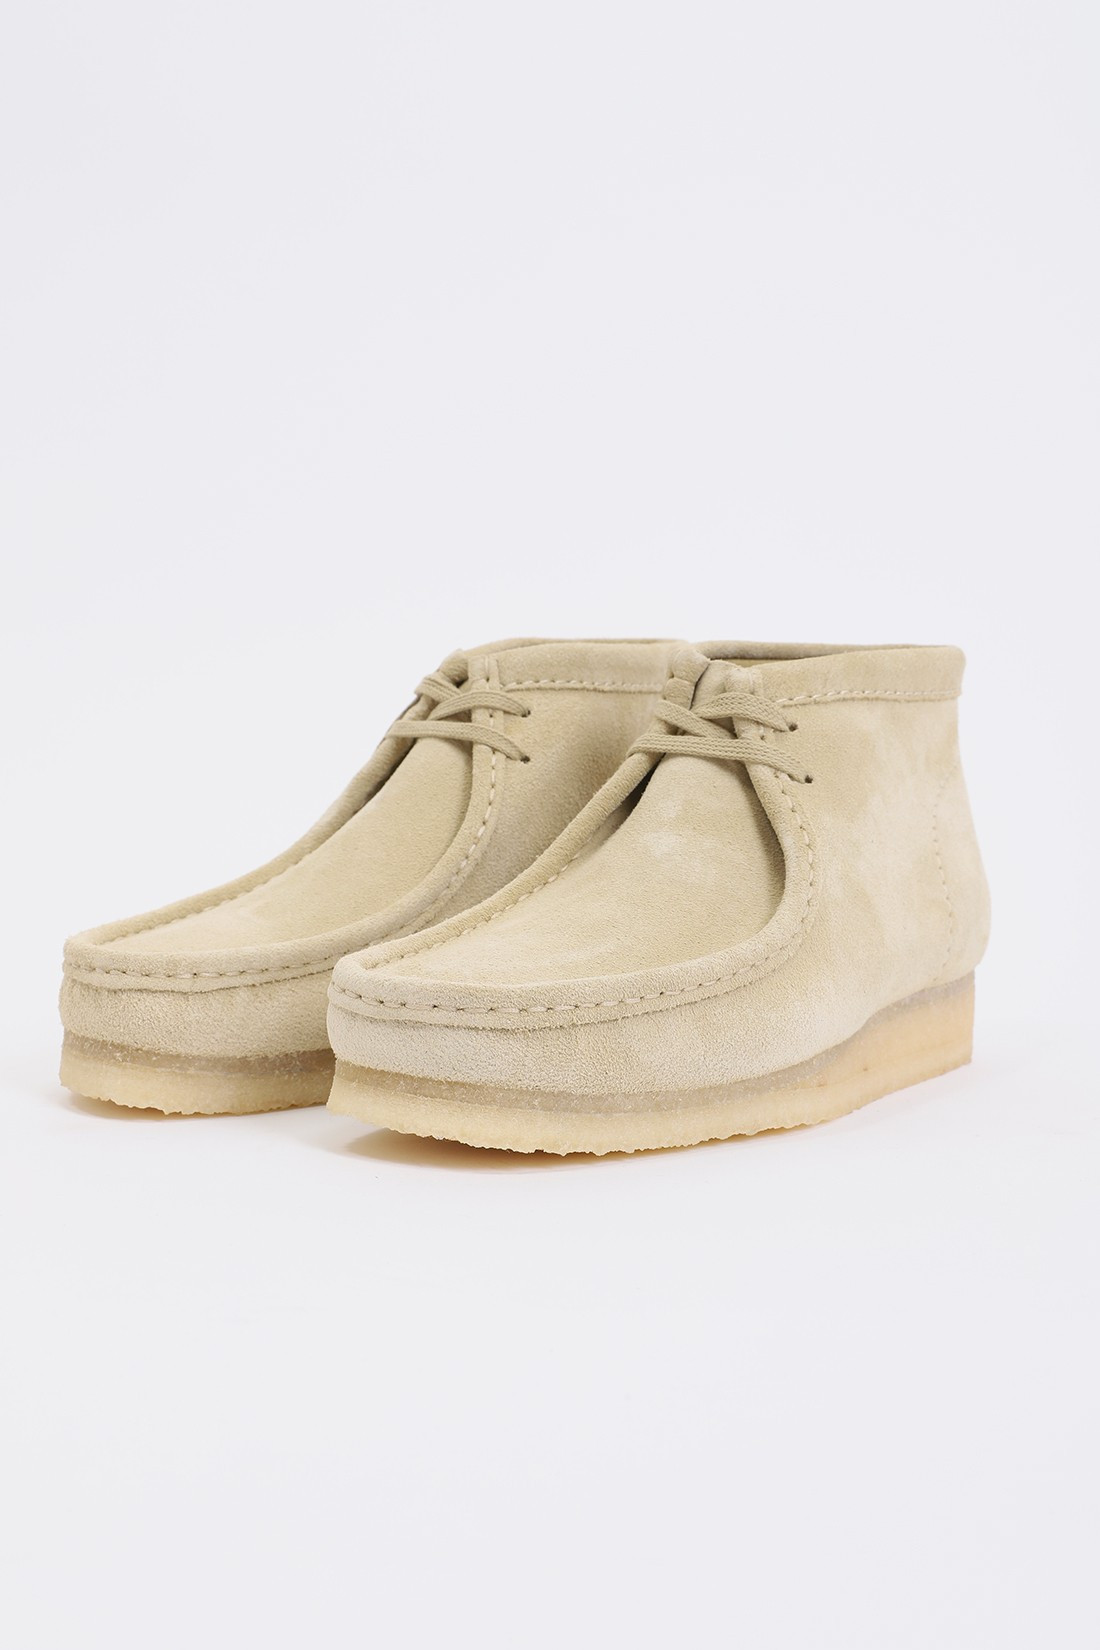 CLARKS ORIGINALS / Wallabee boot Maple suede